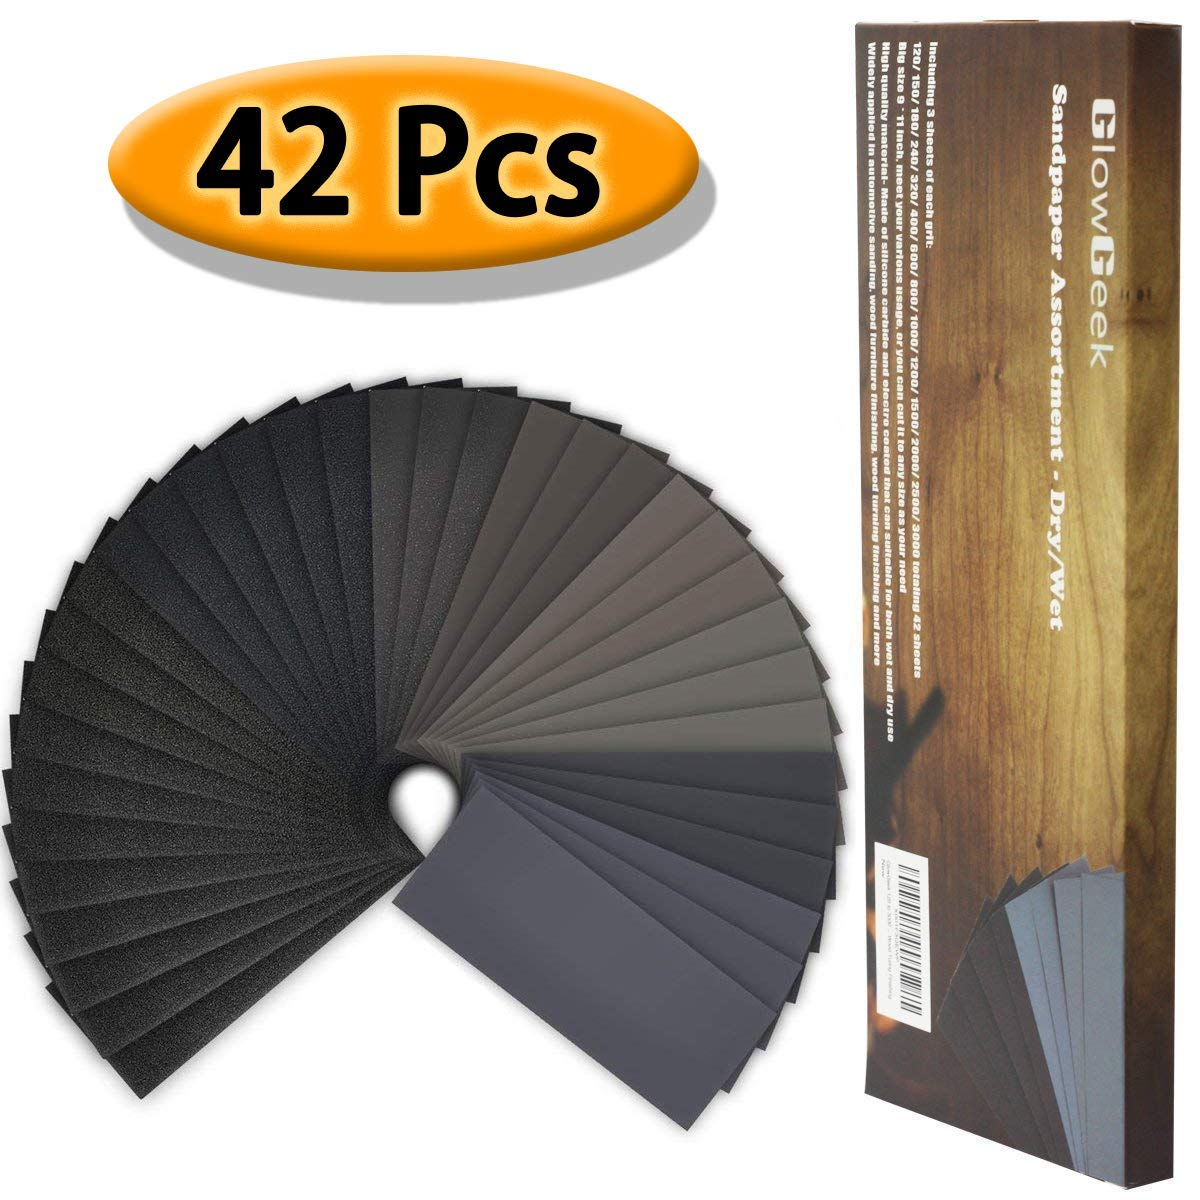 28 Pieces 120 to 3000 Grit Wet Dry Sandpaper Assortment Abrasive Paper Sheets 9 by 3.6 Inches for Automotive Sanding Wood Furniture Finishing Wood Turing Finishing